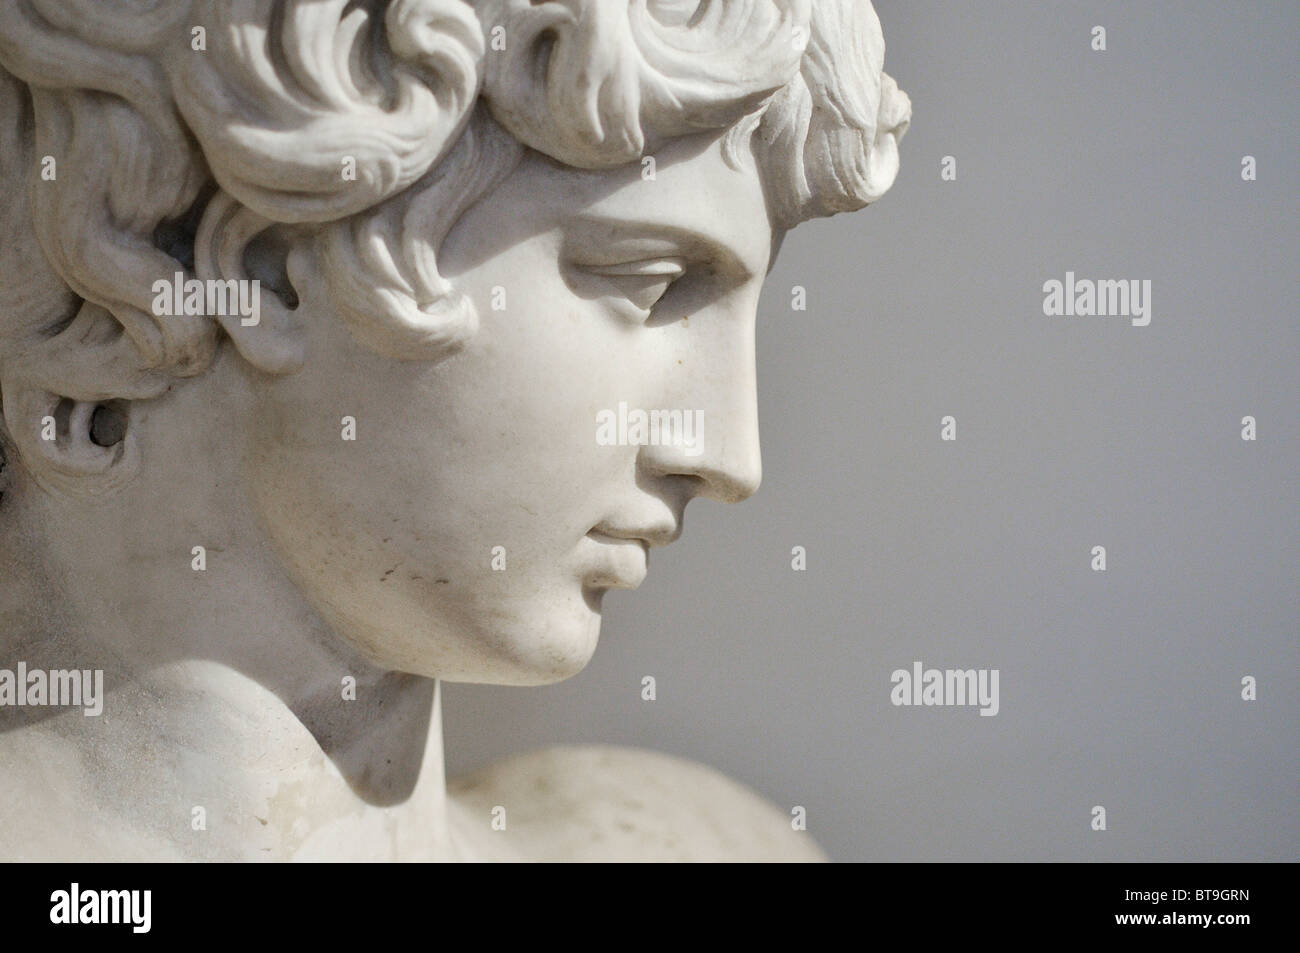 Rome. Italy. Museo Nazionale Romano. Palazzo Altemps. Antinous, from the Ludovisi Collection. Ludovisi Antinous. - Stock Image